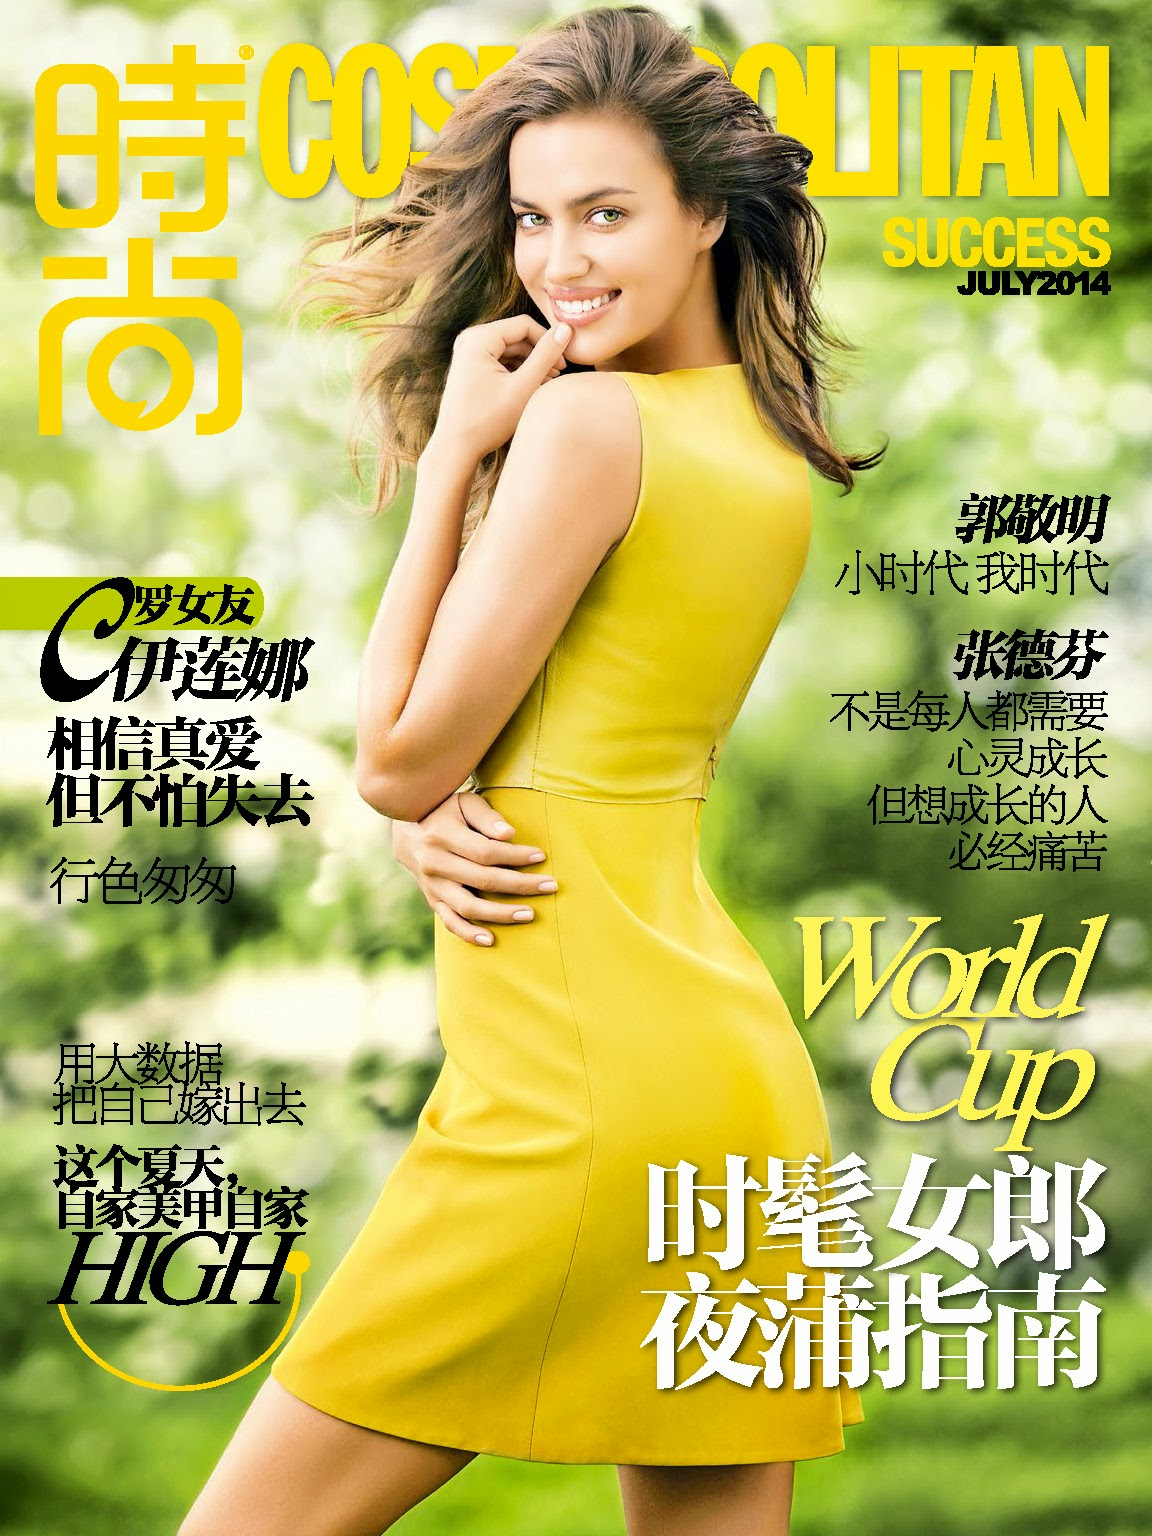 Irina Shayk By Fan Xin For Cosmopolitan Magazine, China, July 2014